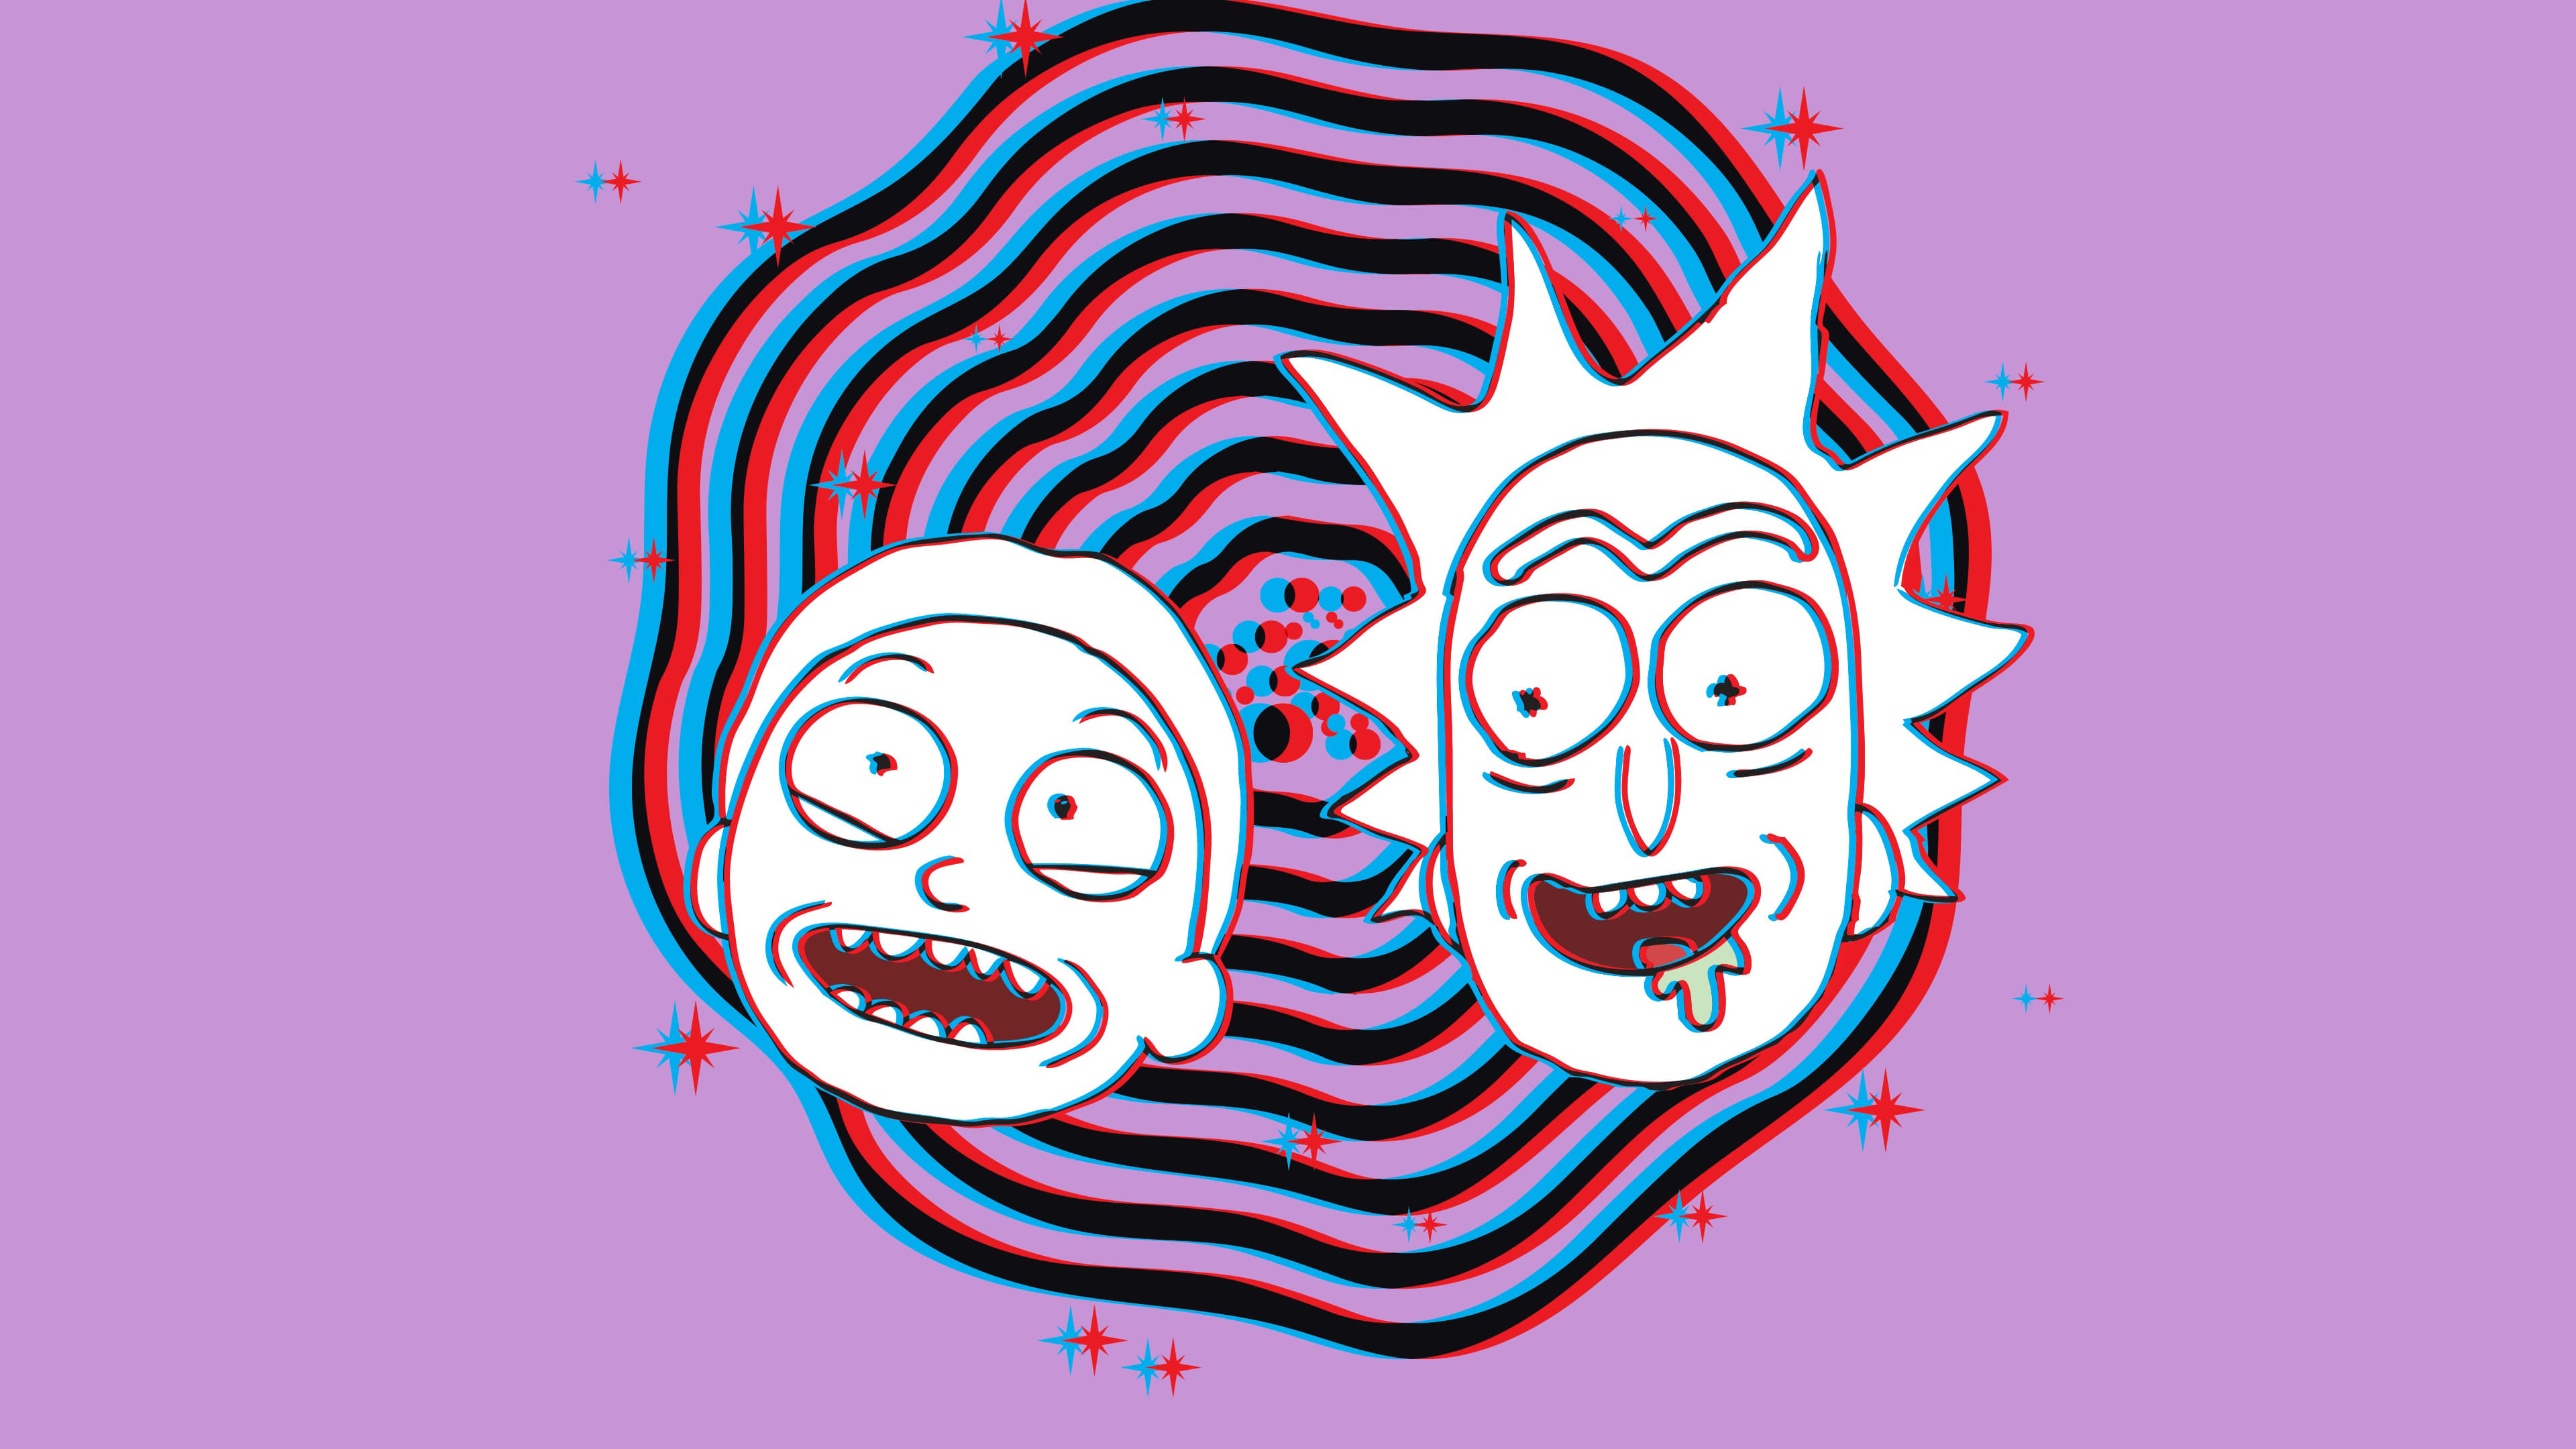 2048x1152 Rick And Morty 2020 2048x1152 Resolution Wallpaper Hd Tv Series 4k Wallpapers Images Photos And Background